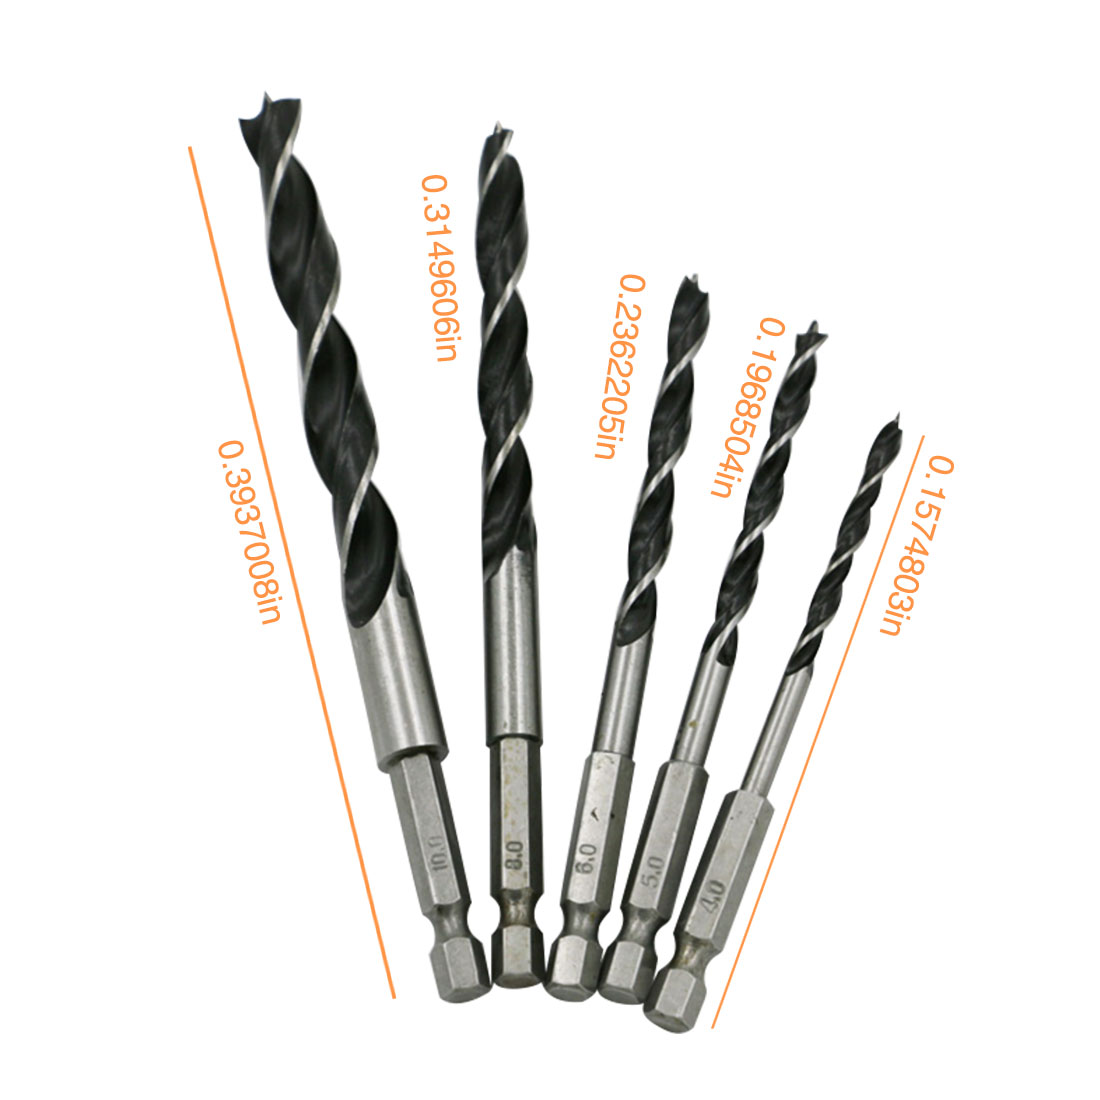 5PCS Drill Bit Set 4mm 5mm 6mm 8mm 10mm Change Metal Tools 1/4 Hex Shank Wood Rustproof Woodworking Drill Hexagonal Shank